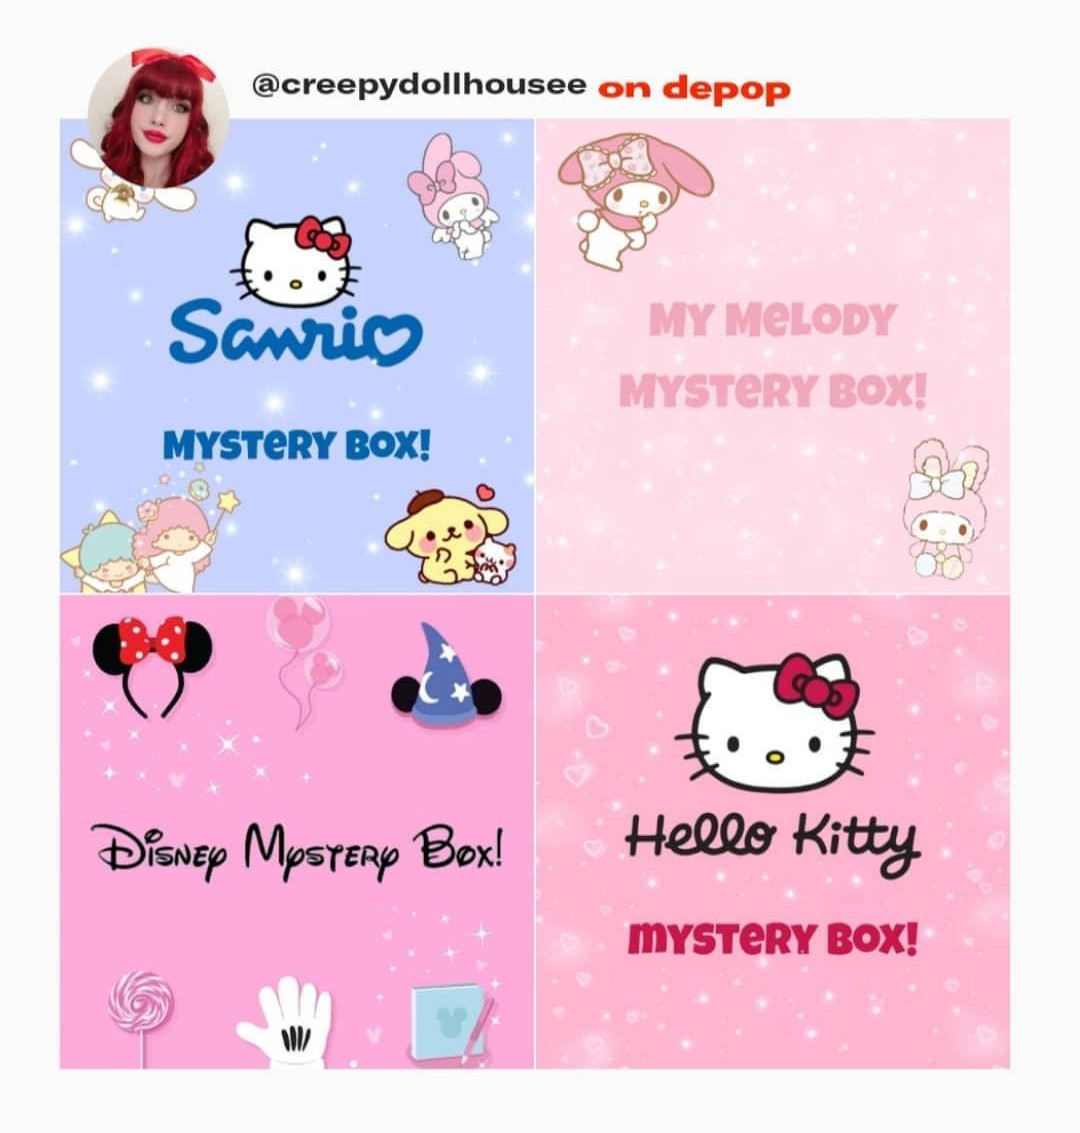 i added new cute mystery boxes to my depop shop! all of the items are super adorable  if anyone is interested, you can dm me!  #hellokitty #mymelody #sanrio #disneypic.twitter.com/XaBGuK88Rp